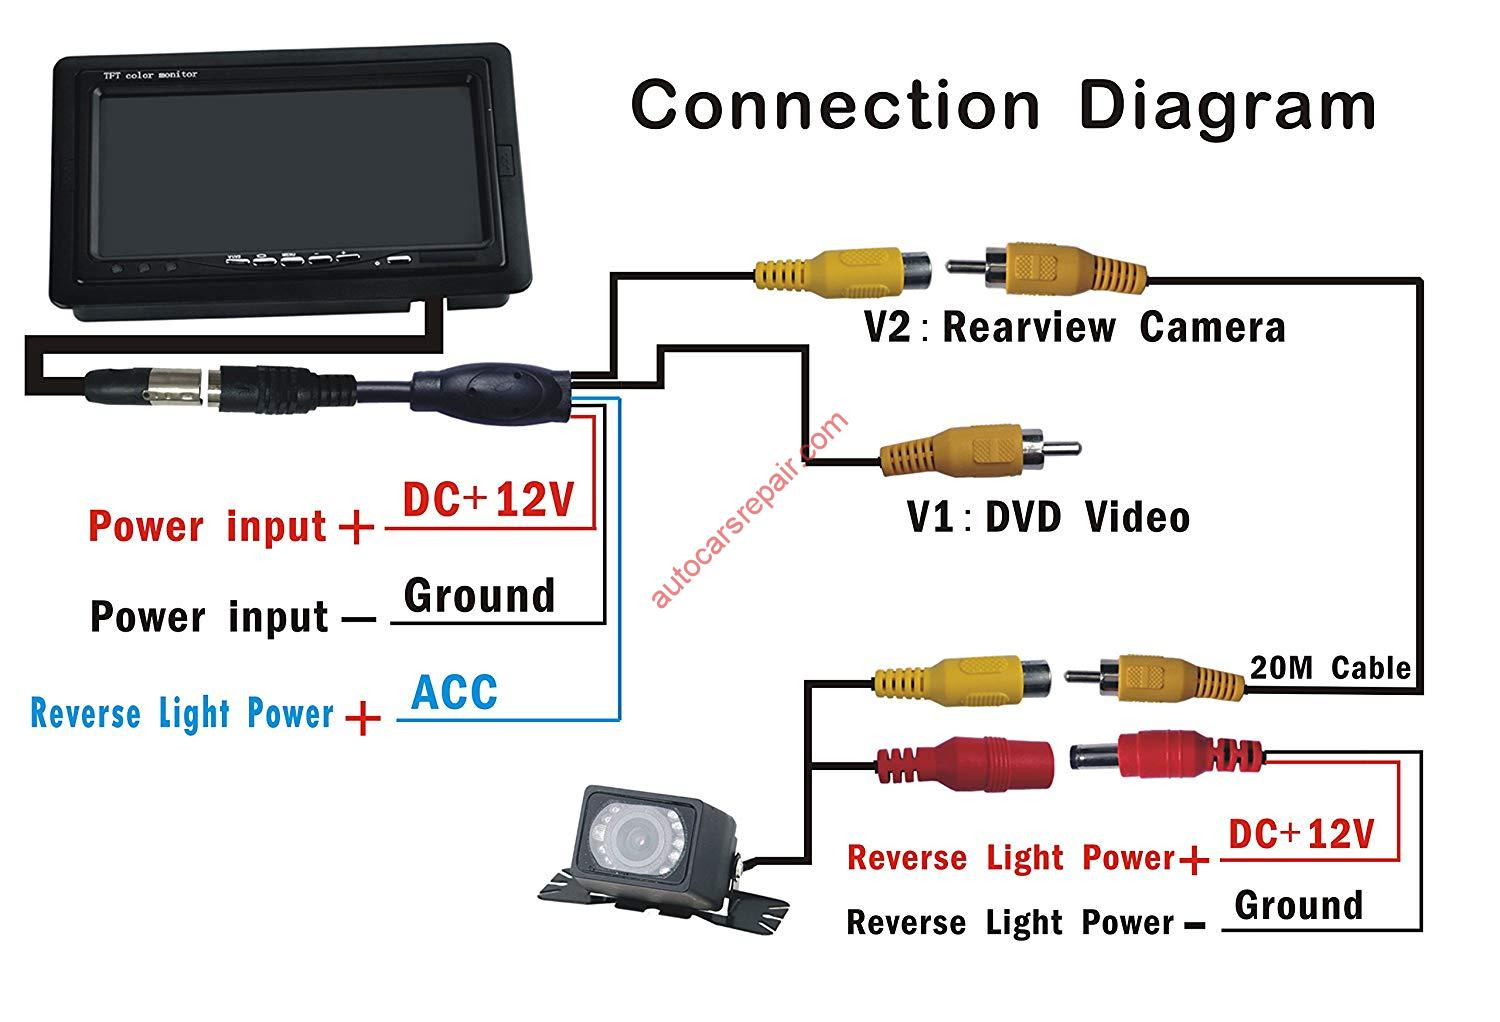 Wiring Diagram Backup Camera Power To Tft Screen from autocarsrepair.com